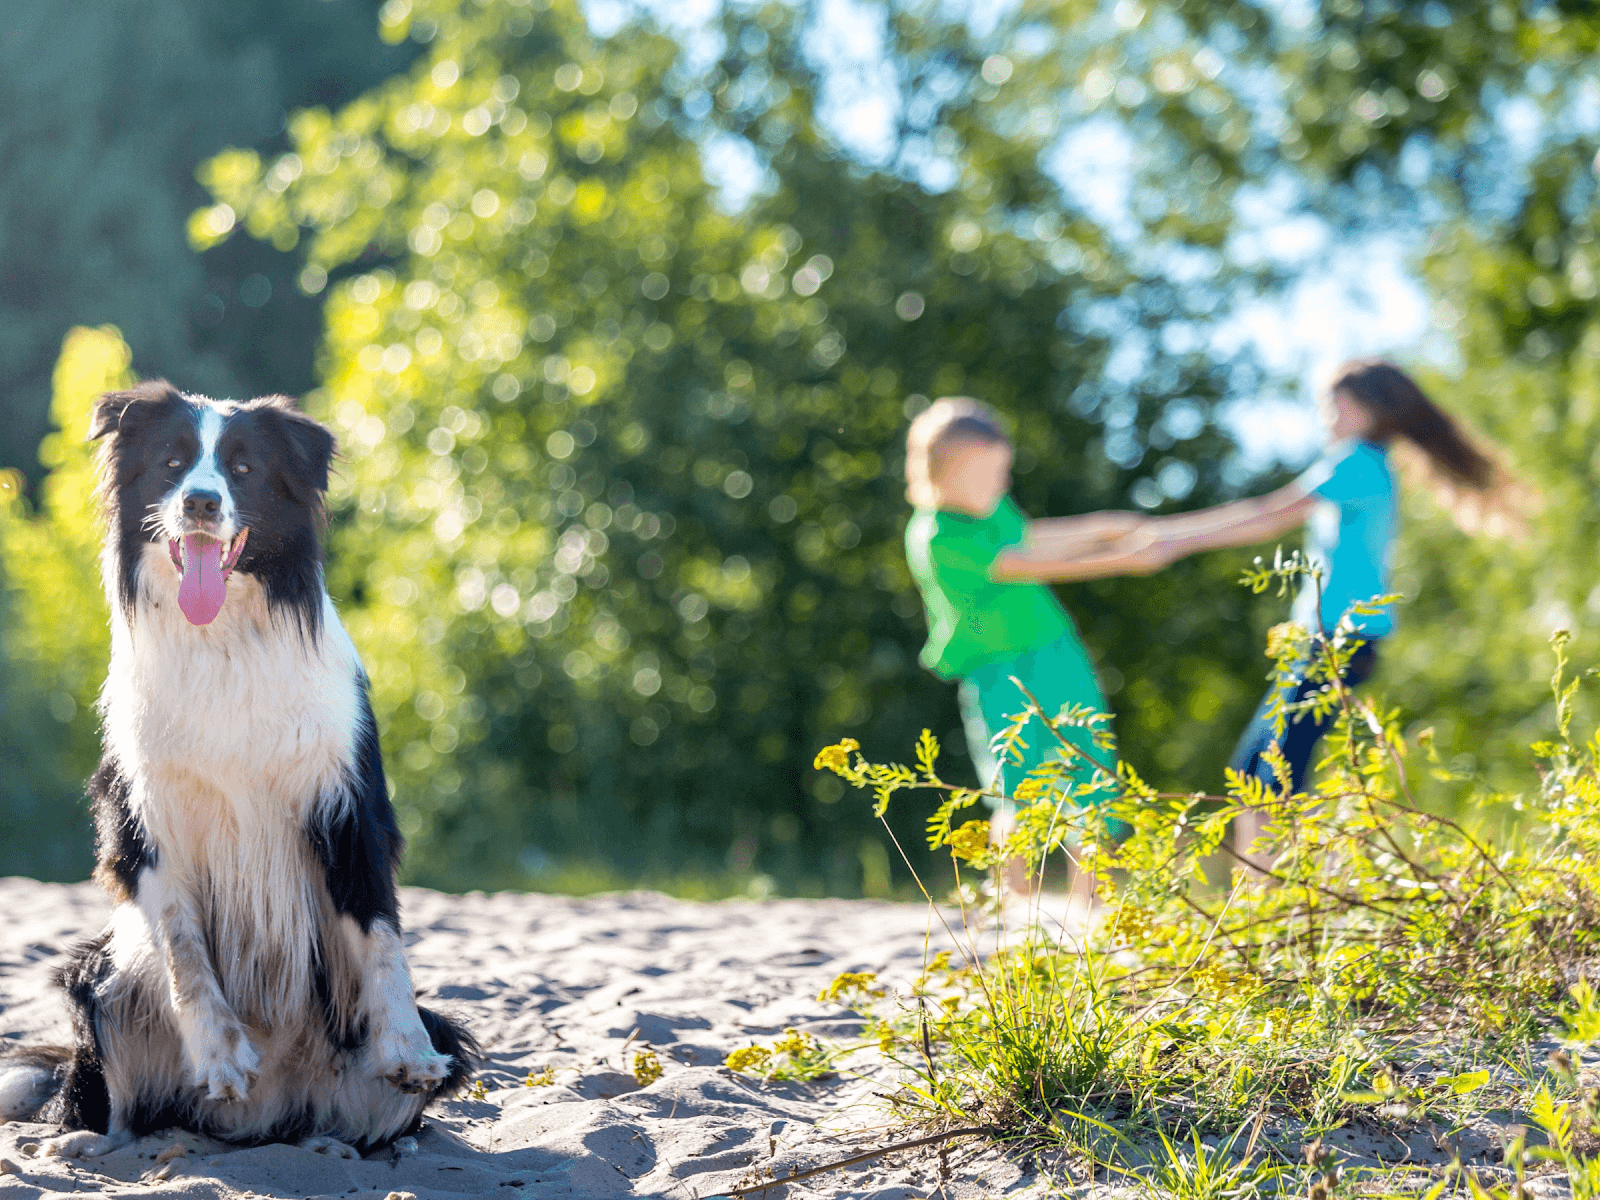 bordie-collie-dog-on-sand-kids-playing-background